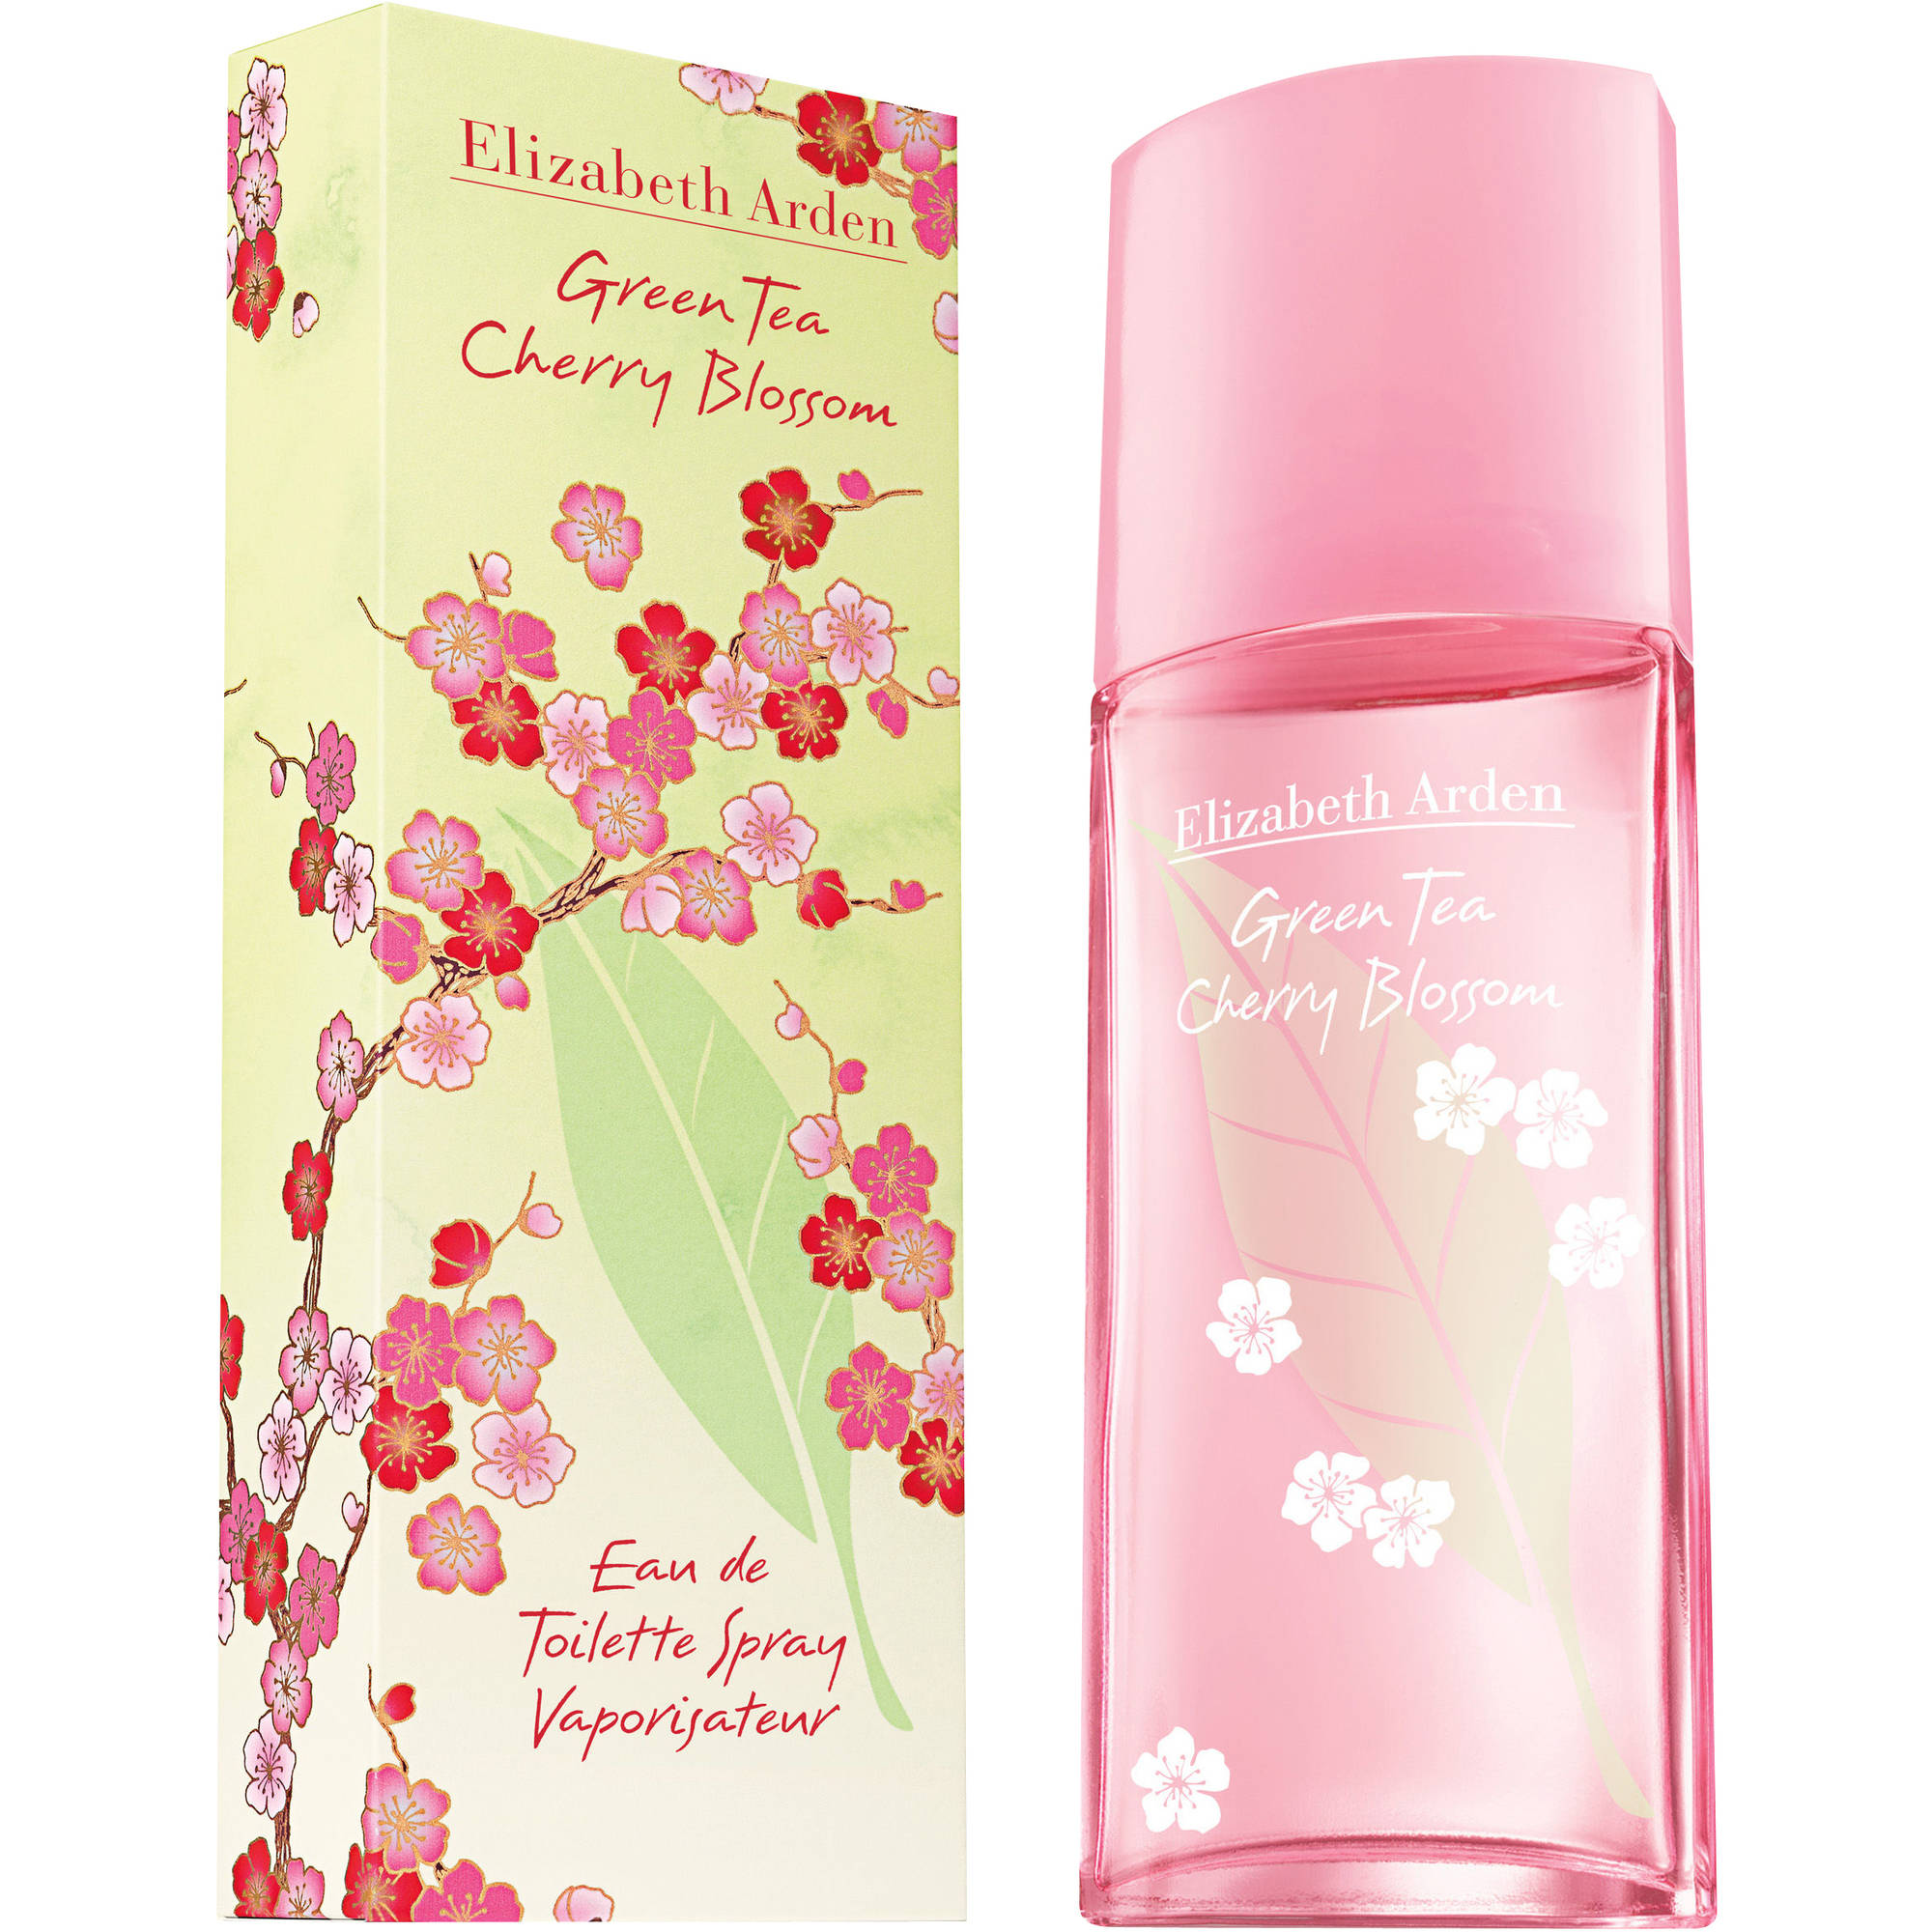 Elizabeth Arden Green Tea Cherry Blossom Eau de Toilette Spray, 3.3. fl oz